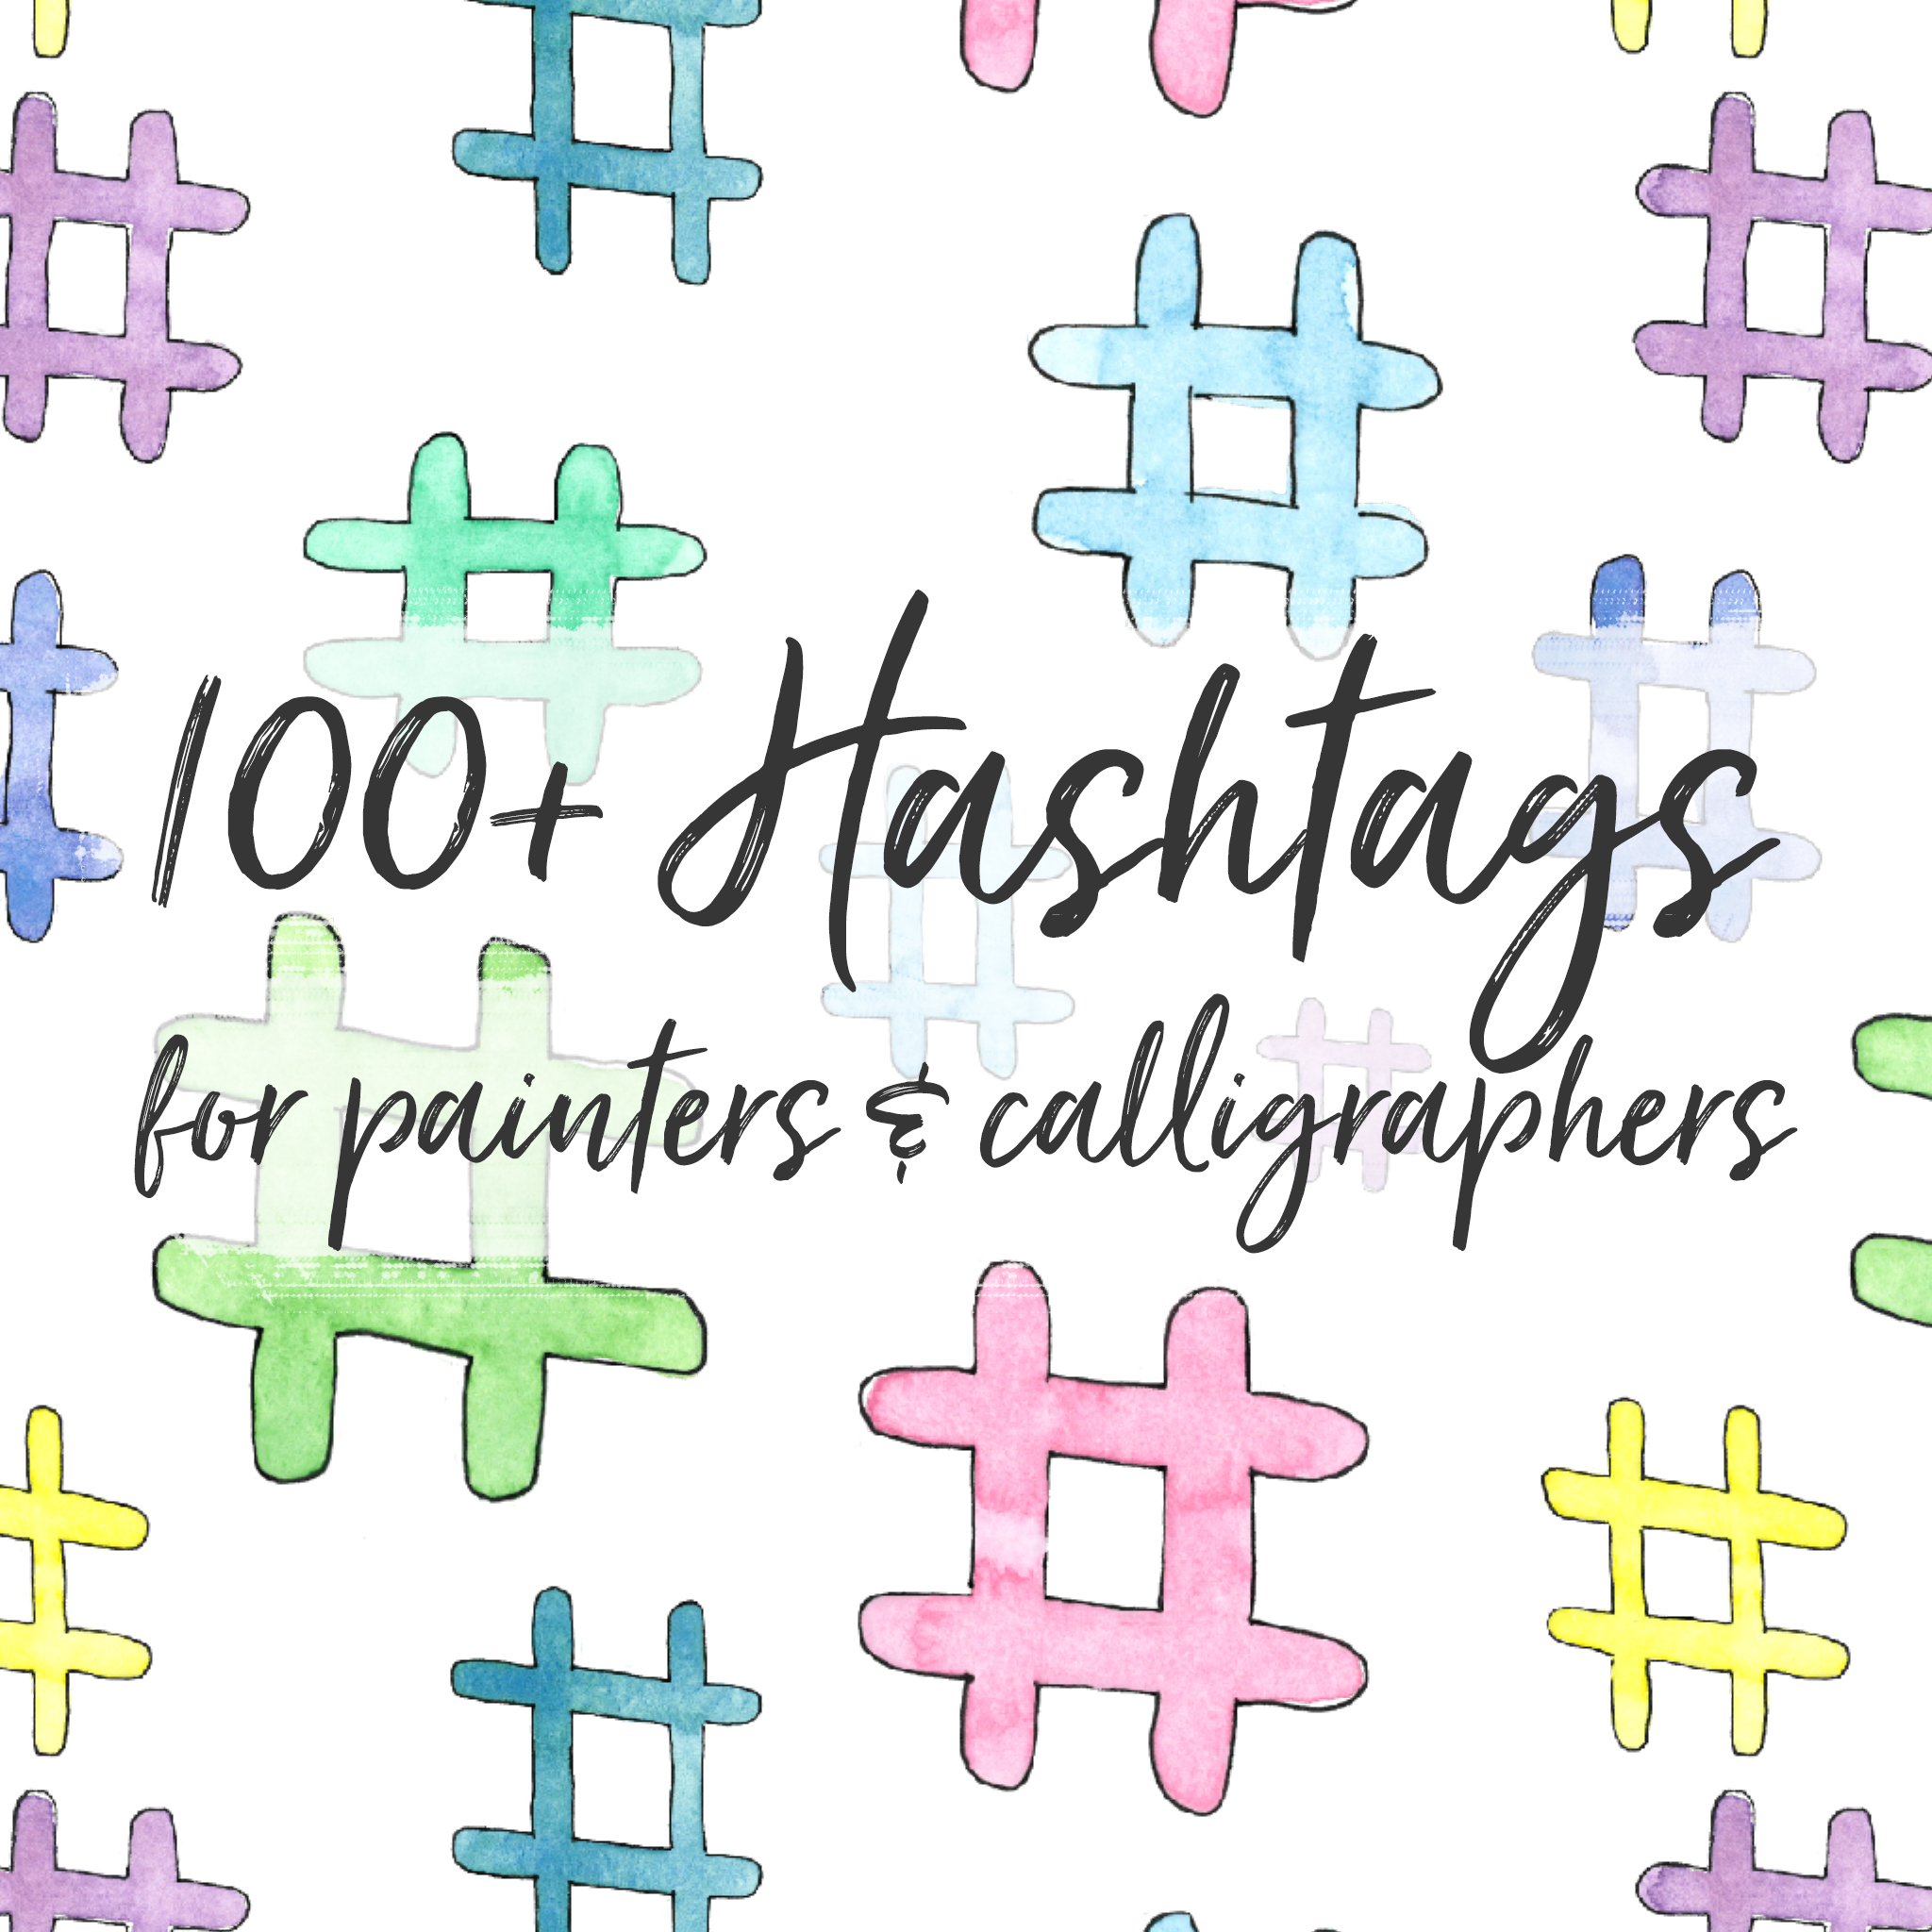 Brush up your hashtag lists with 100+ hashtags specific to painters & calligraphers.